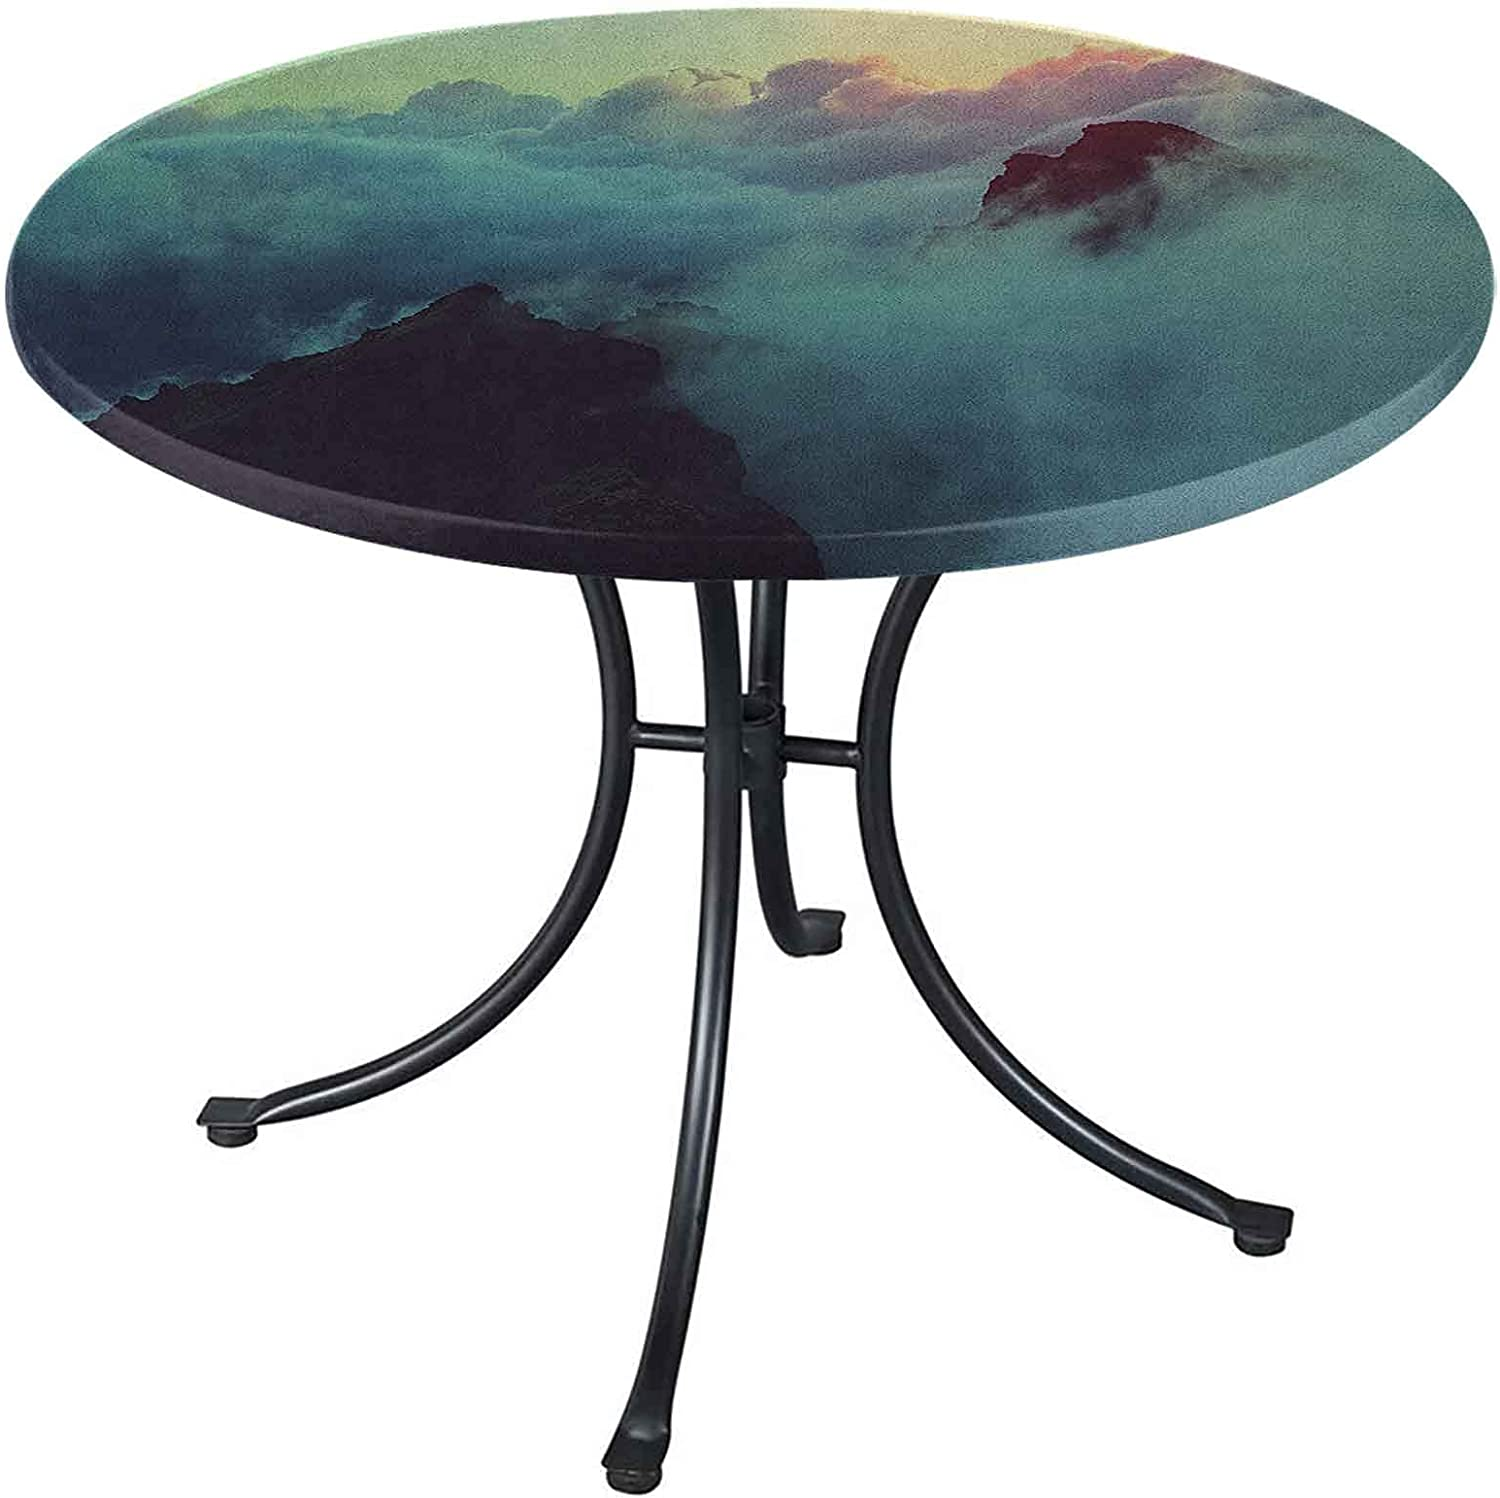 Clouds Round Table Cover 40